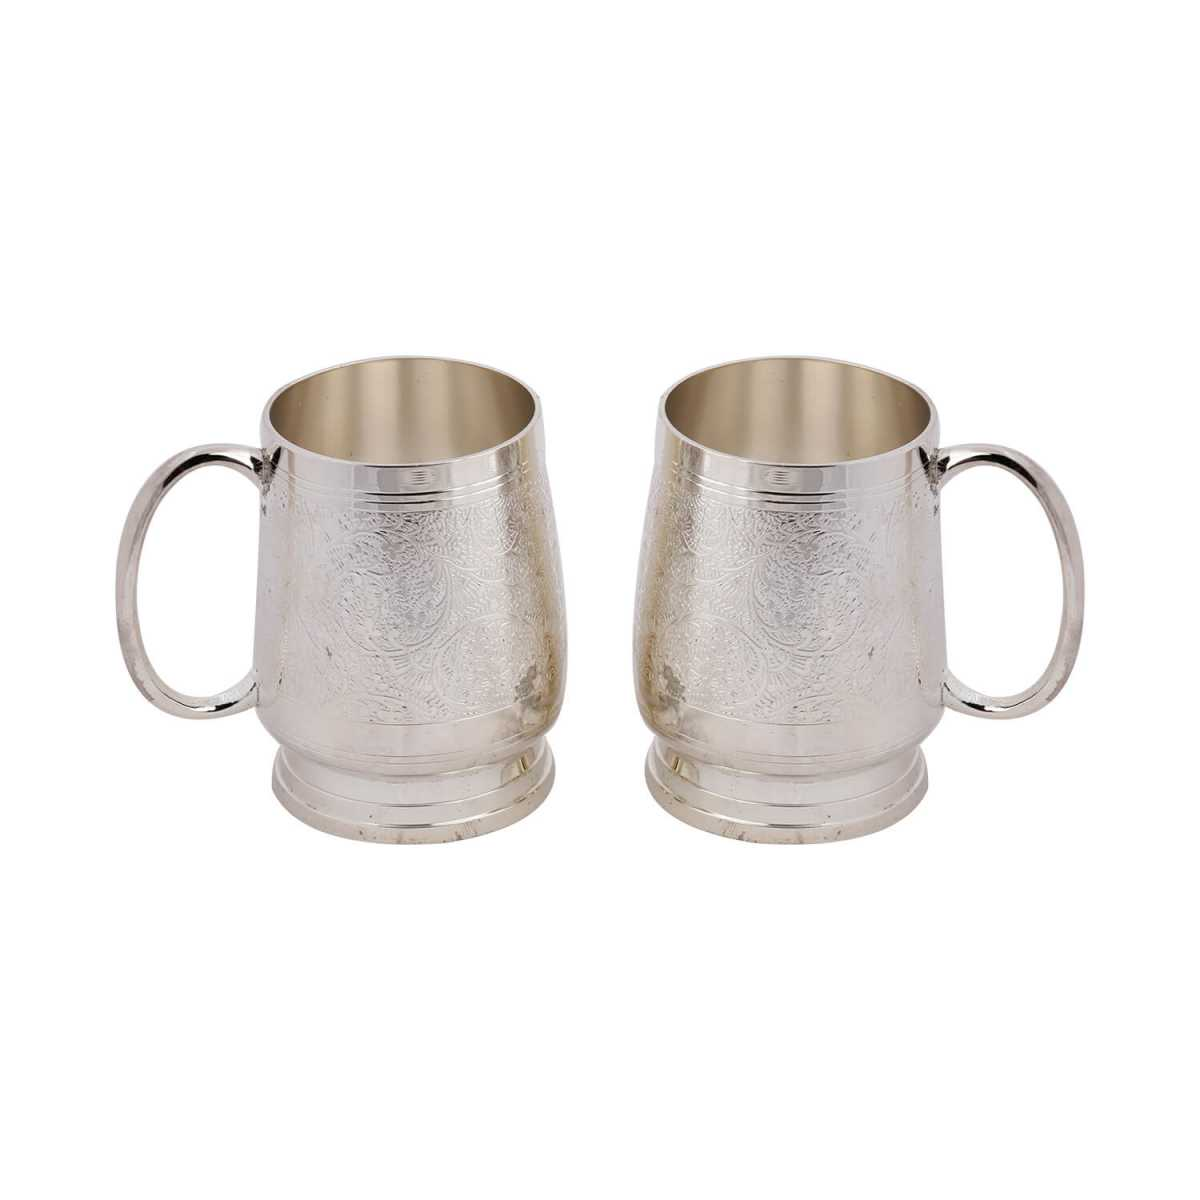 Silver Shine Silver Plated Designer Coffee Mugs/Beer mugs set of 2